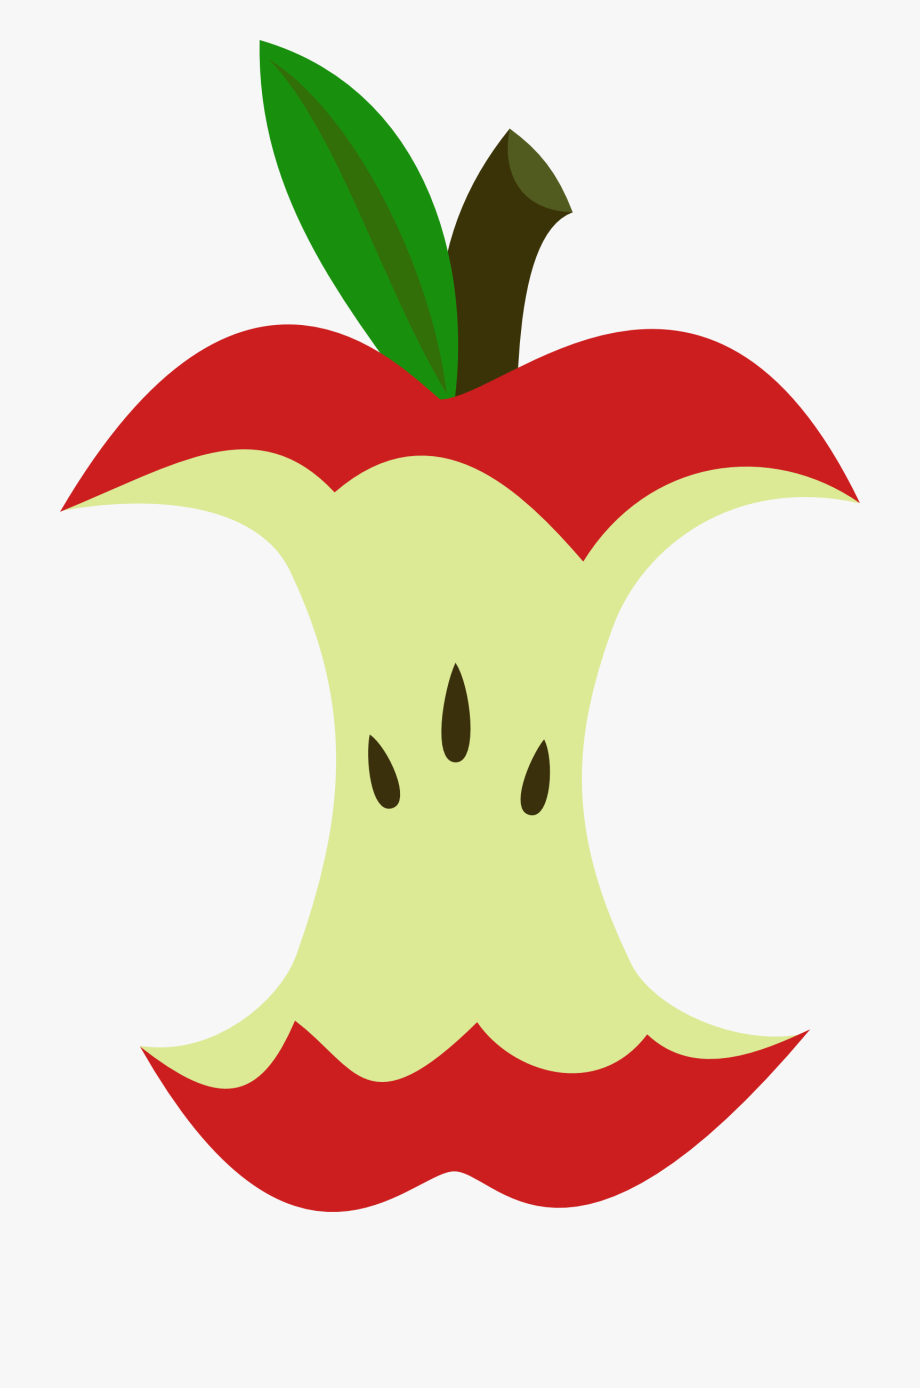 Pin On Png Image